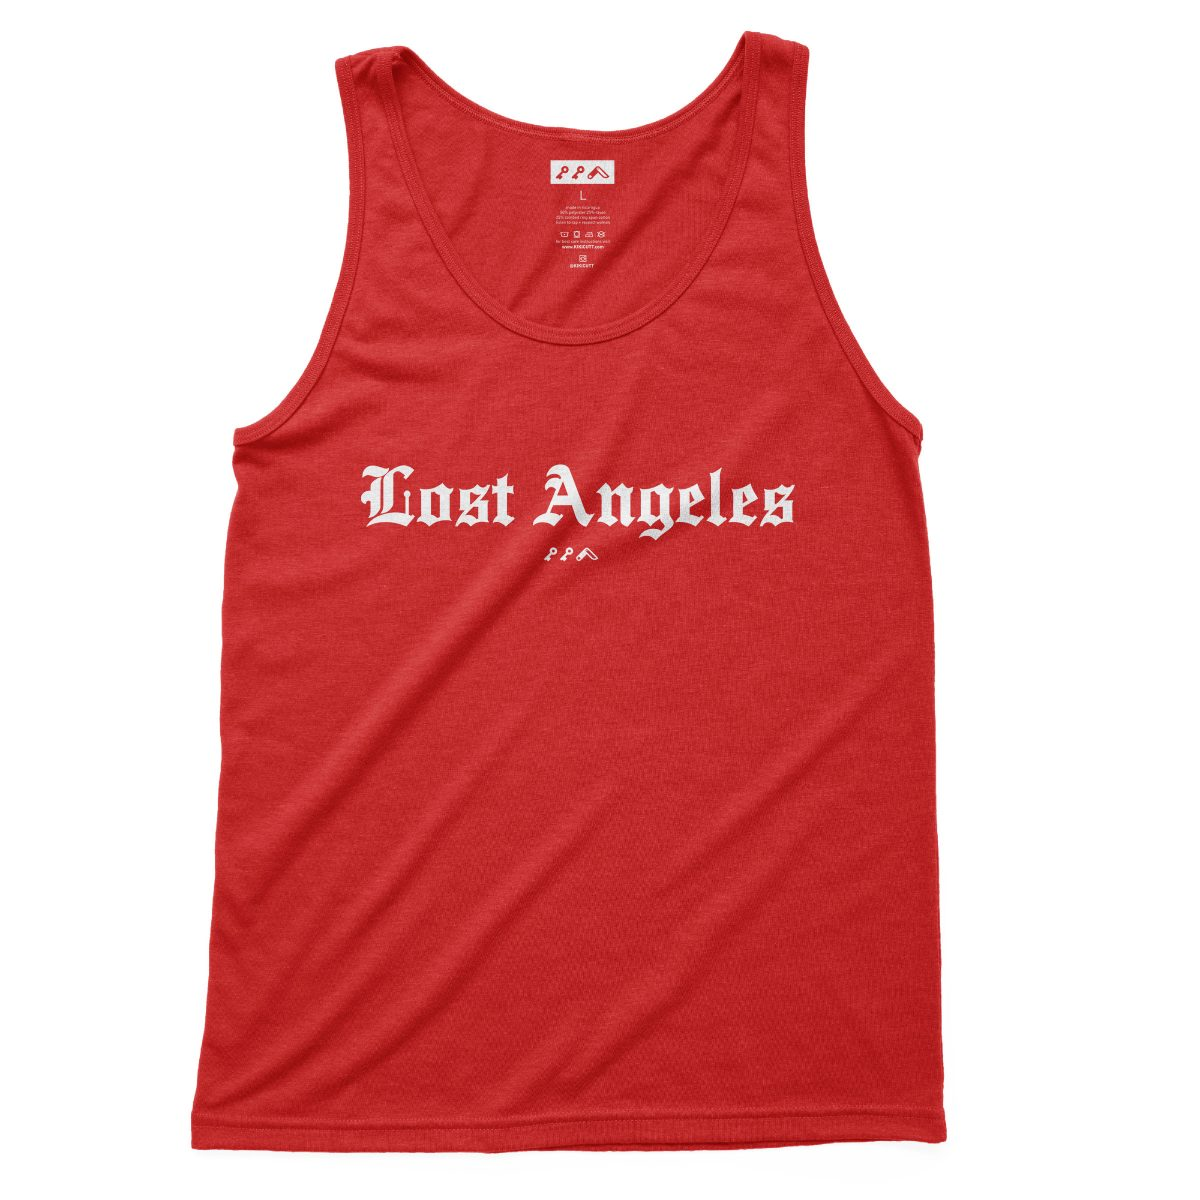 """""""Lost Angeles"""" soft tri-blend tank tops in red by KIKICUTT"""